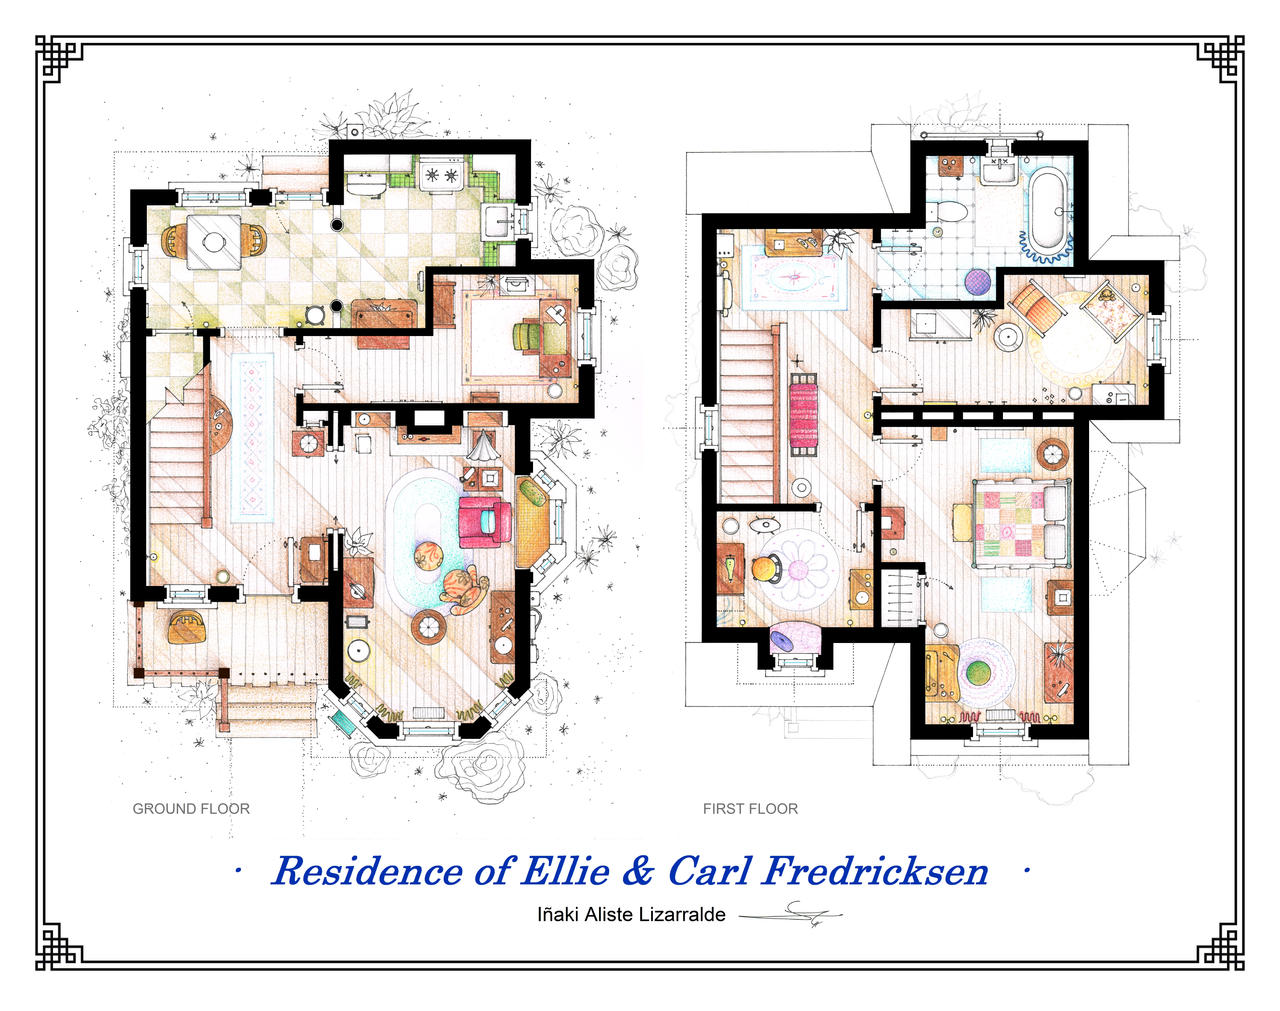 floor plans for homes free blueprint floor plans zionstar find free floorplans of the house from up by nikneuk with floor plans for homes free